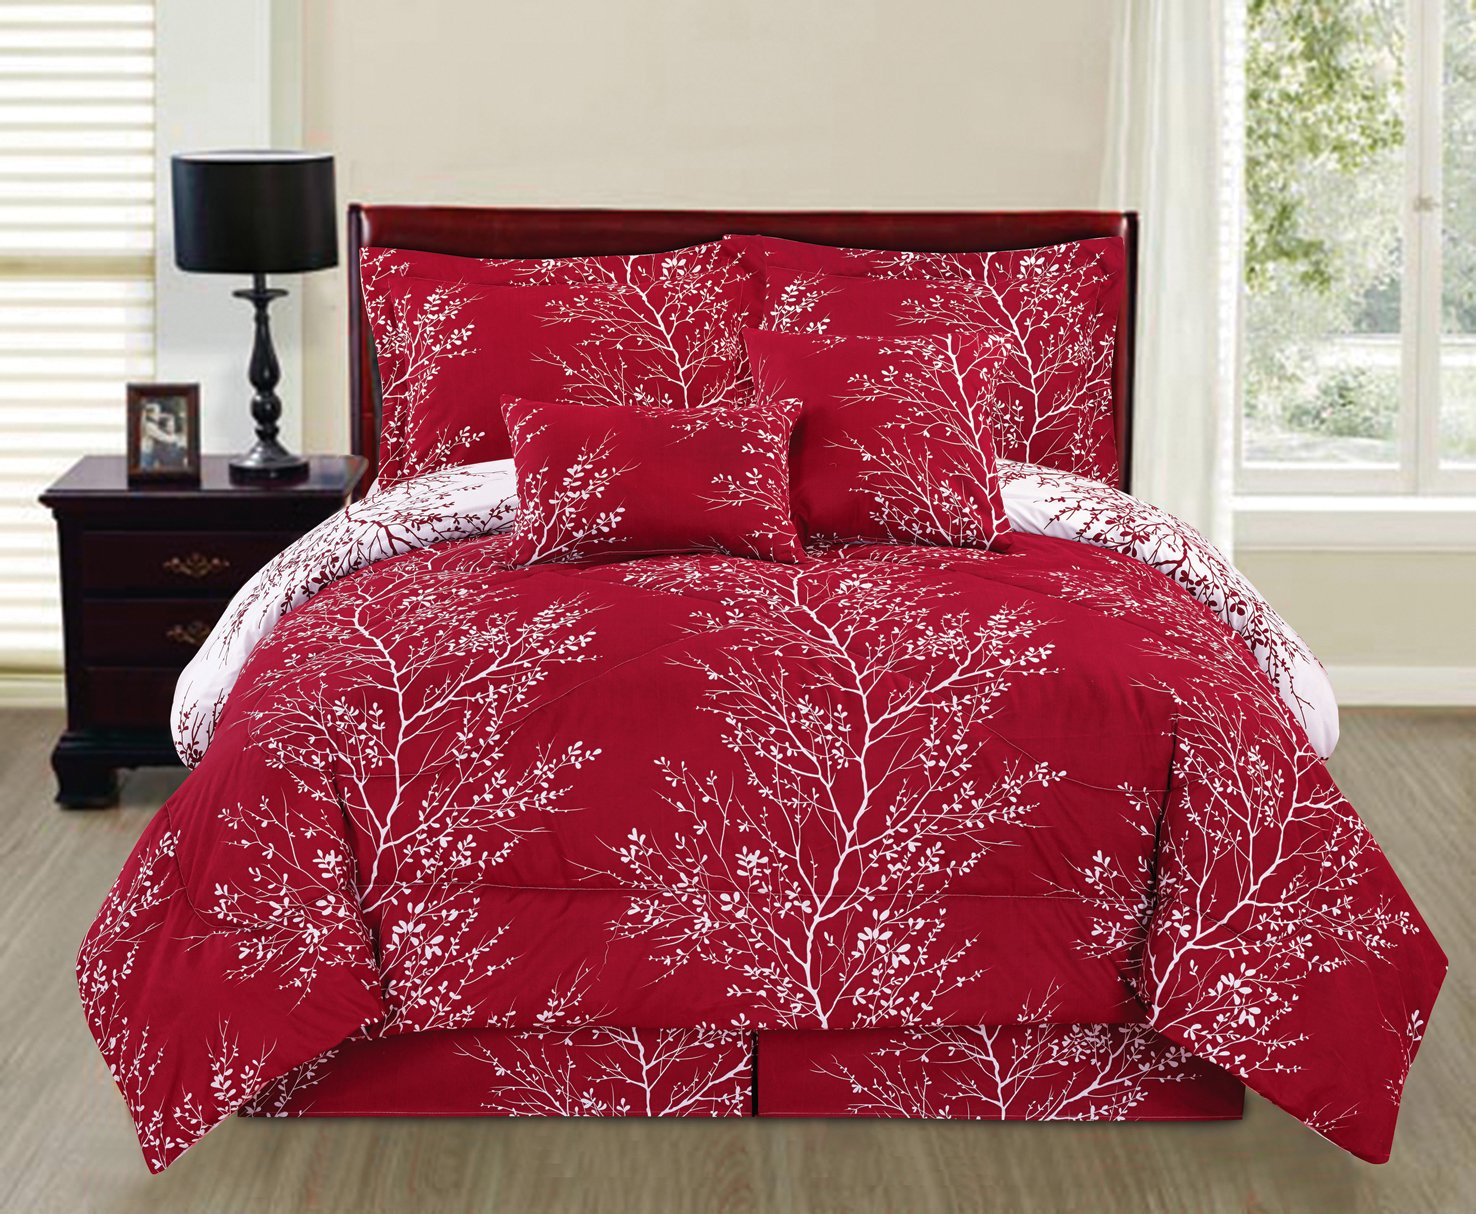 6 Piece Reversible Branches Comforter Set New Bedding (Queen, Red